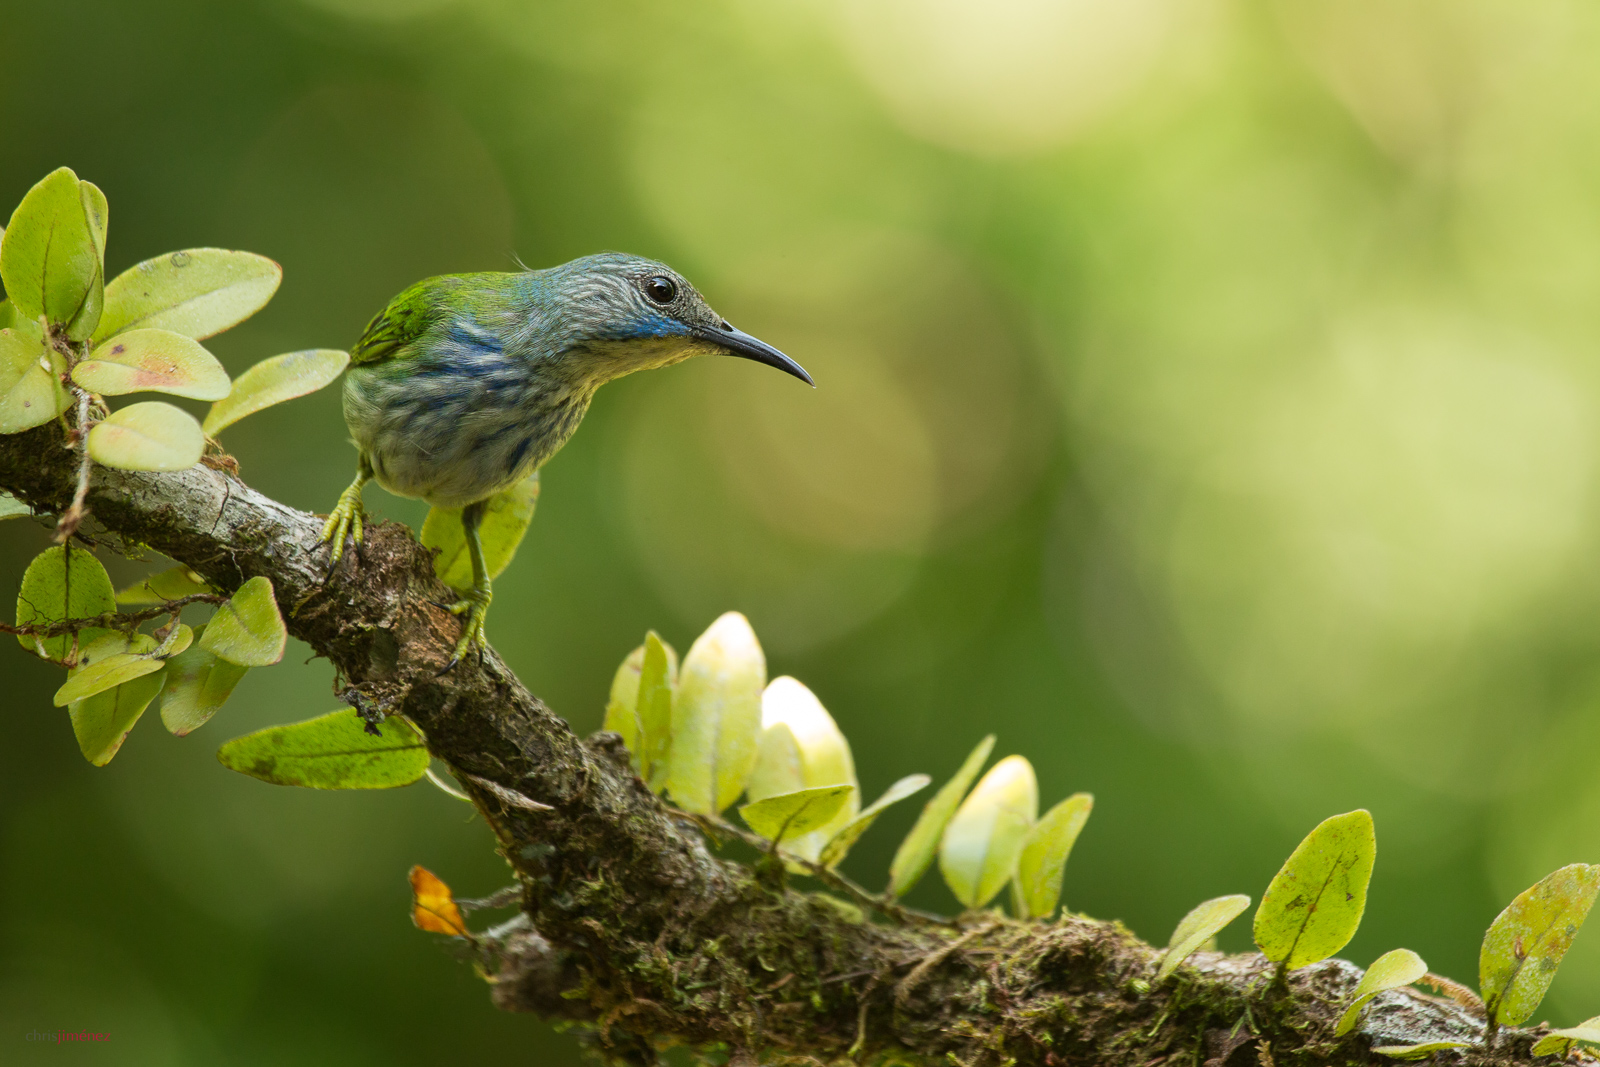 Shining Honeycreeper (Cyanerpes lucidus) perched on a branch at the low lands of Costa Rica, Guapiles, Cope Wildlife http://www.chrisjimenez.net